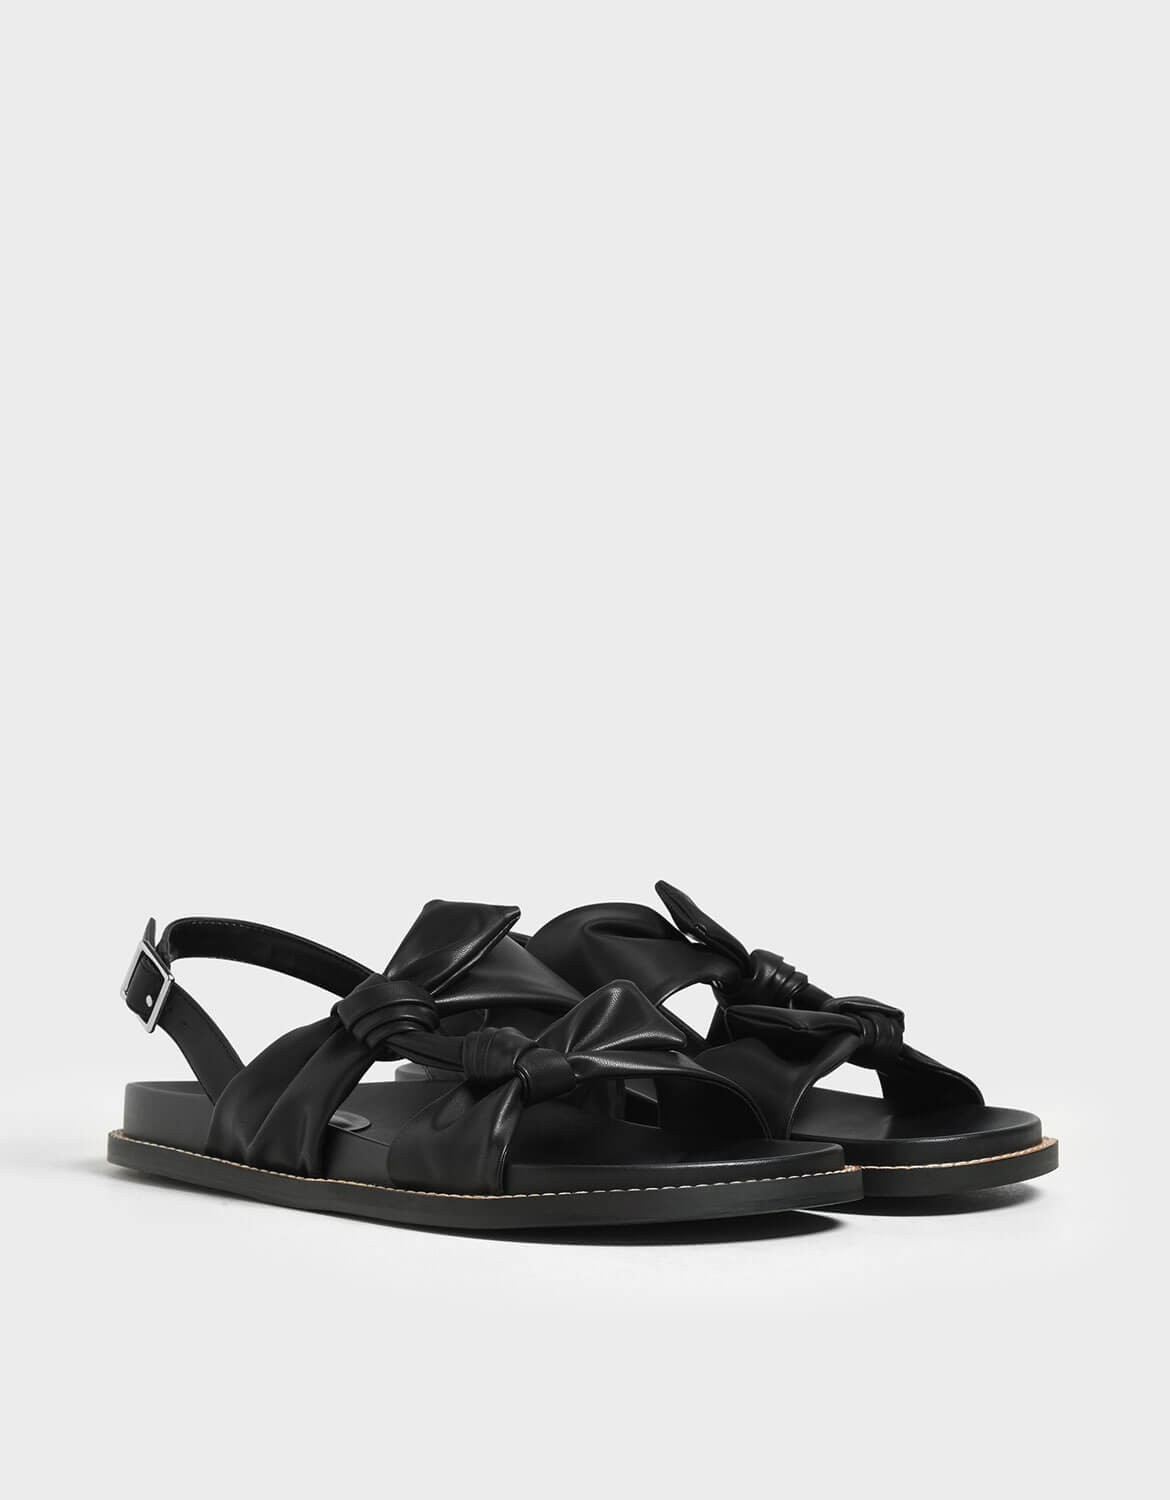 Charles & Keith Leather look sandals    $49